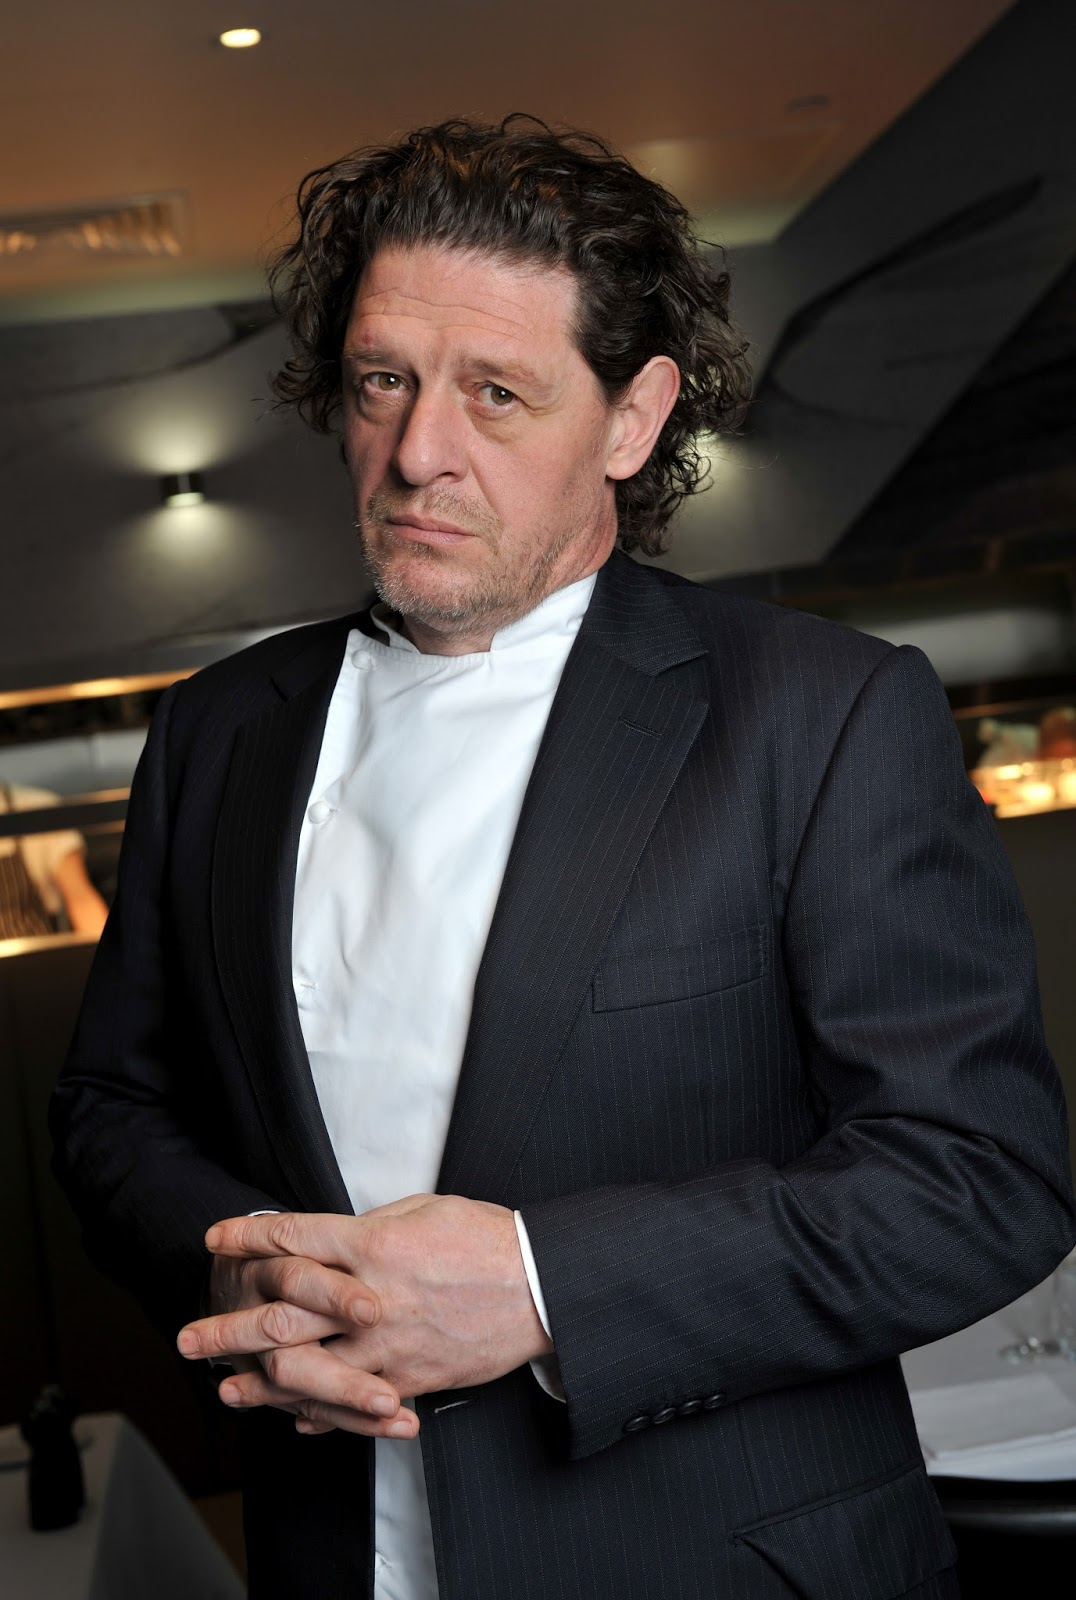 Kee Hua Chee Live! World Famous Chef Marco Pierre White. How To Remove A Kitchen Faucet. Kitchen Corner Cabinet Ideas. China Szechuan Kitchen. Local Kitchen And Bar. Kitchen Bowls. Professional Kitchen Faucets. Kitchen Islands With Storage. Jct Kitchen Atlanta